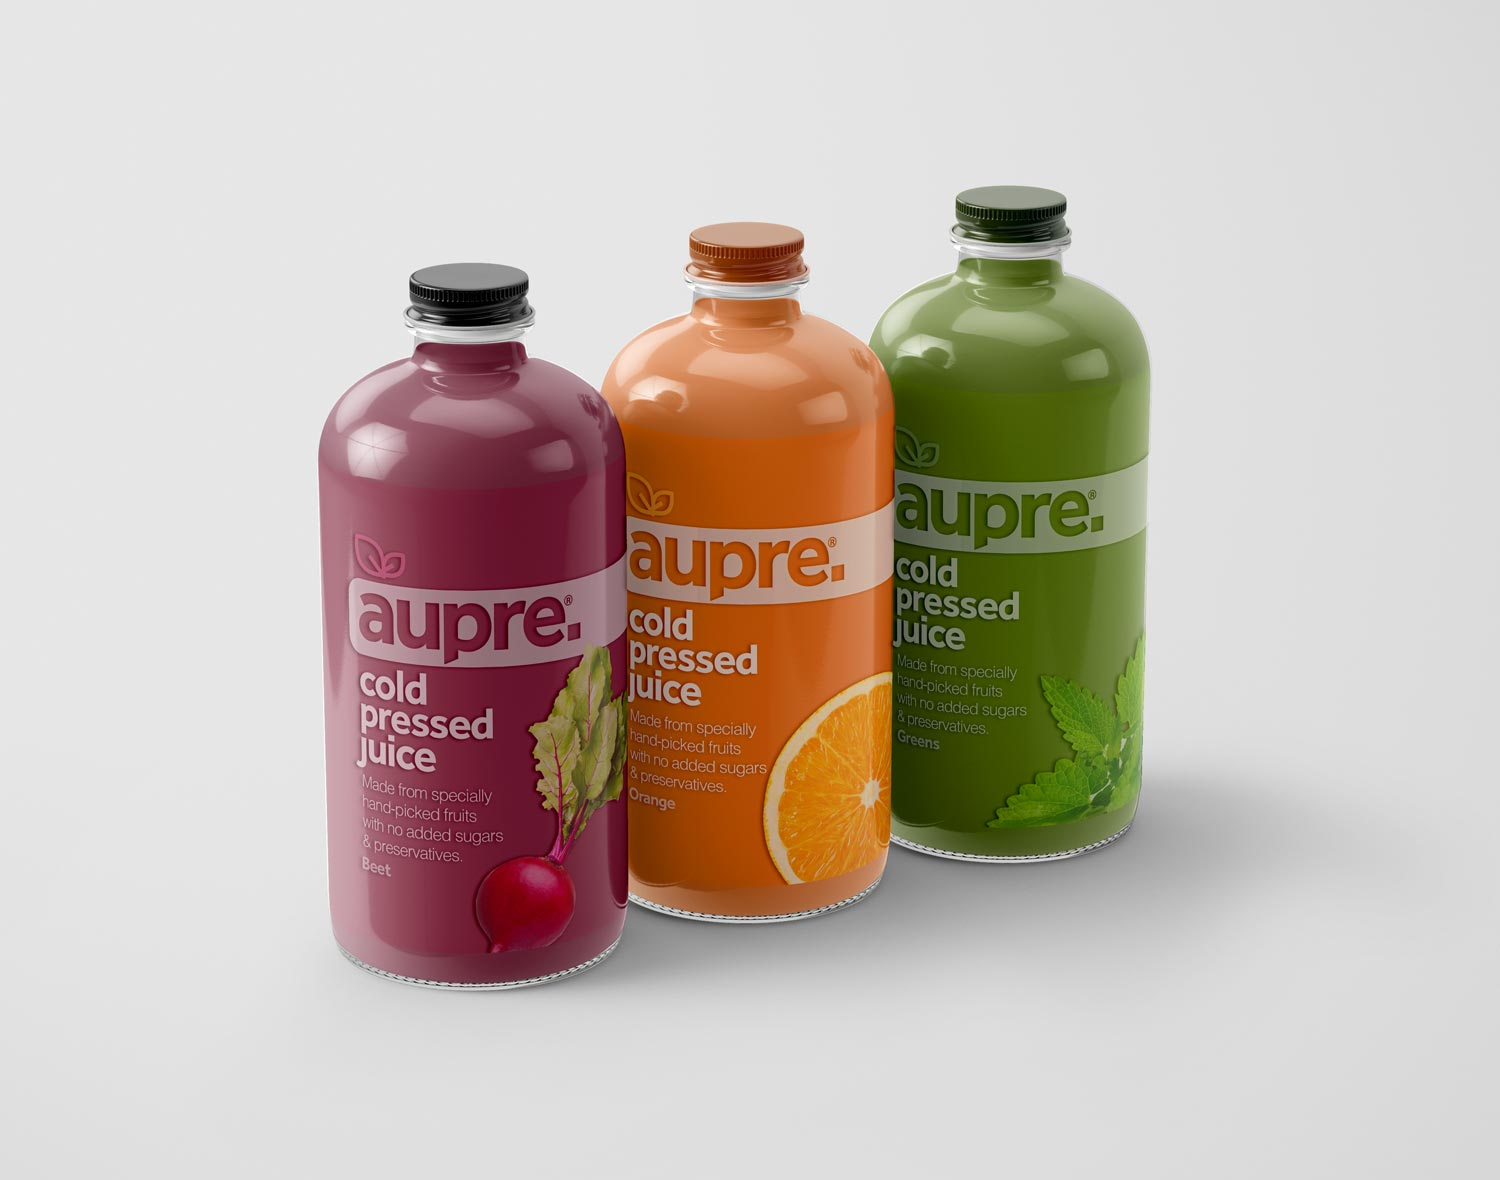 aupre-juice-bottles